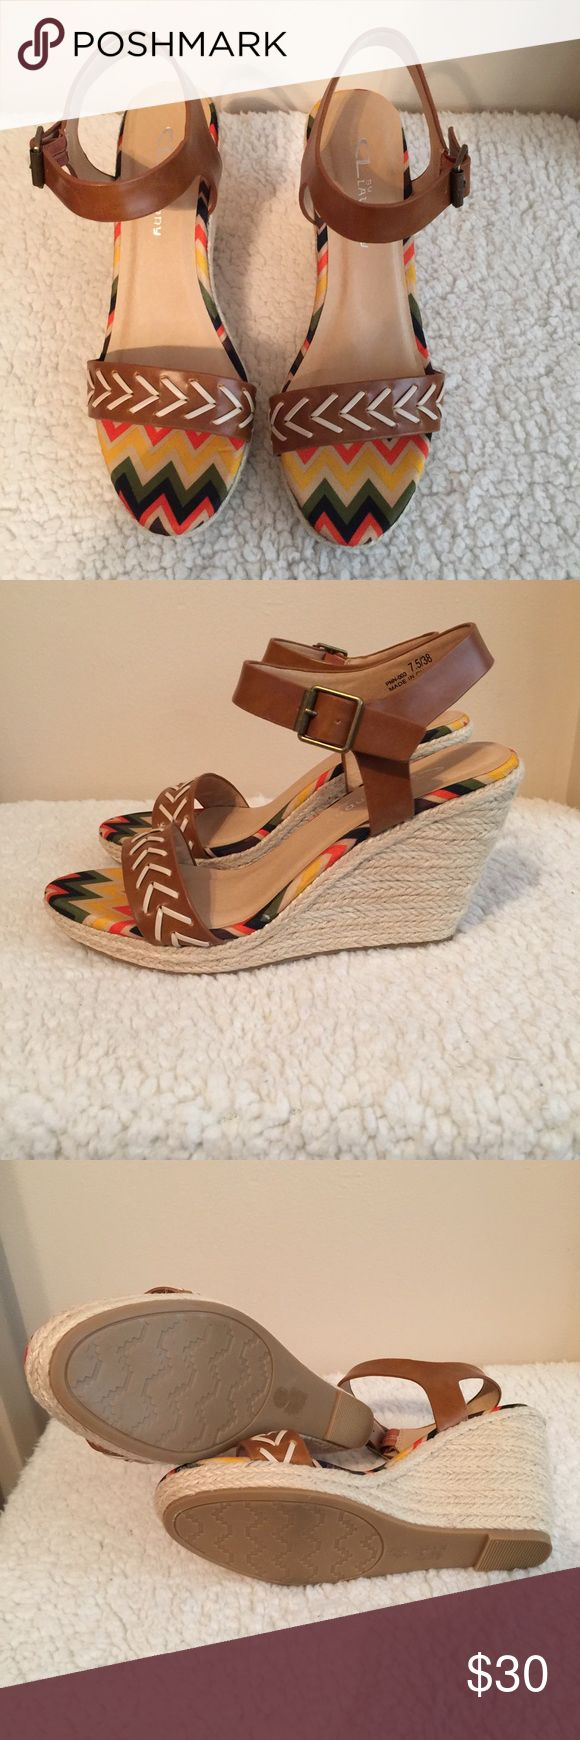 Wedges CL by Laundry Tribal pattern Wedges. Super comfortable to wear all day! NIB! CL Shoes Wedges